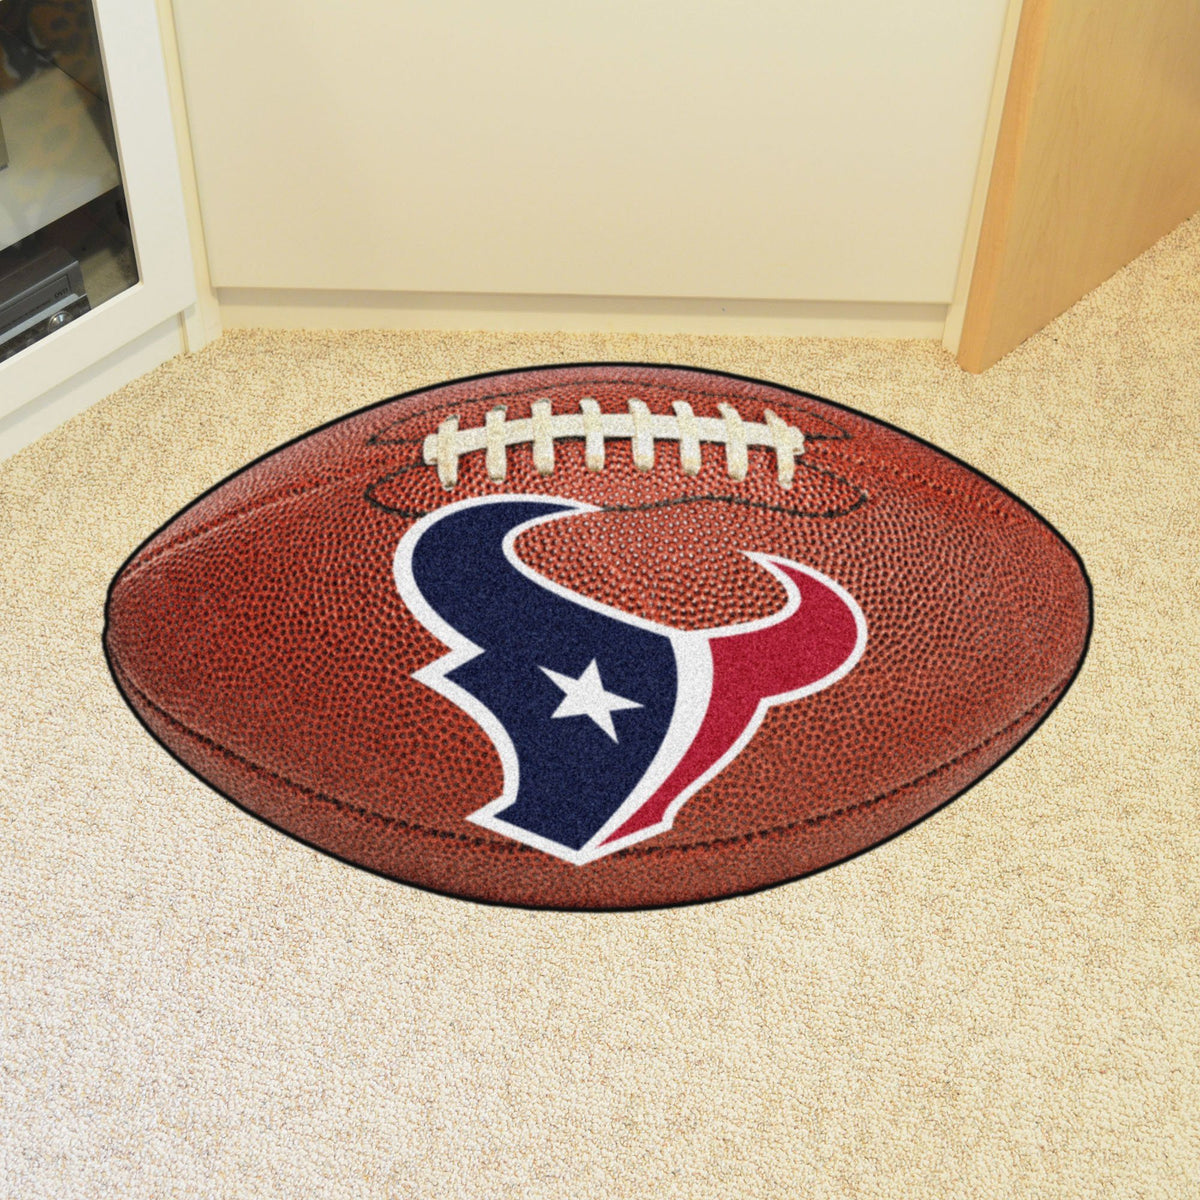 NFL - Football Mat NFL Mats, Custom Shape Rugs, Football Mat, NFL, Home Fan Mats Houston Texans